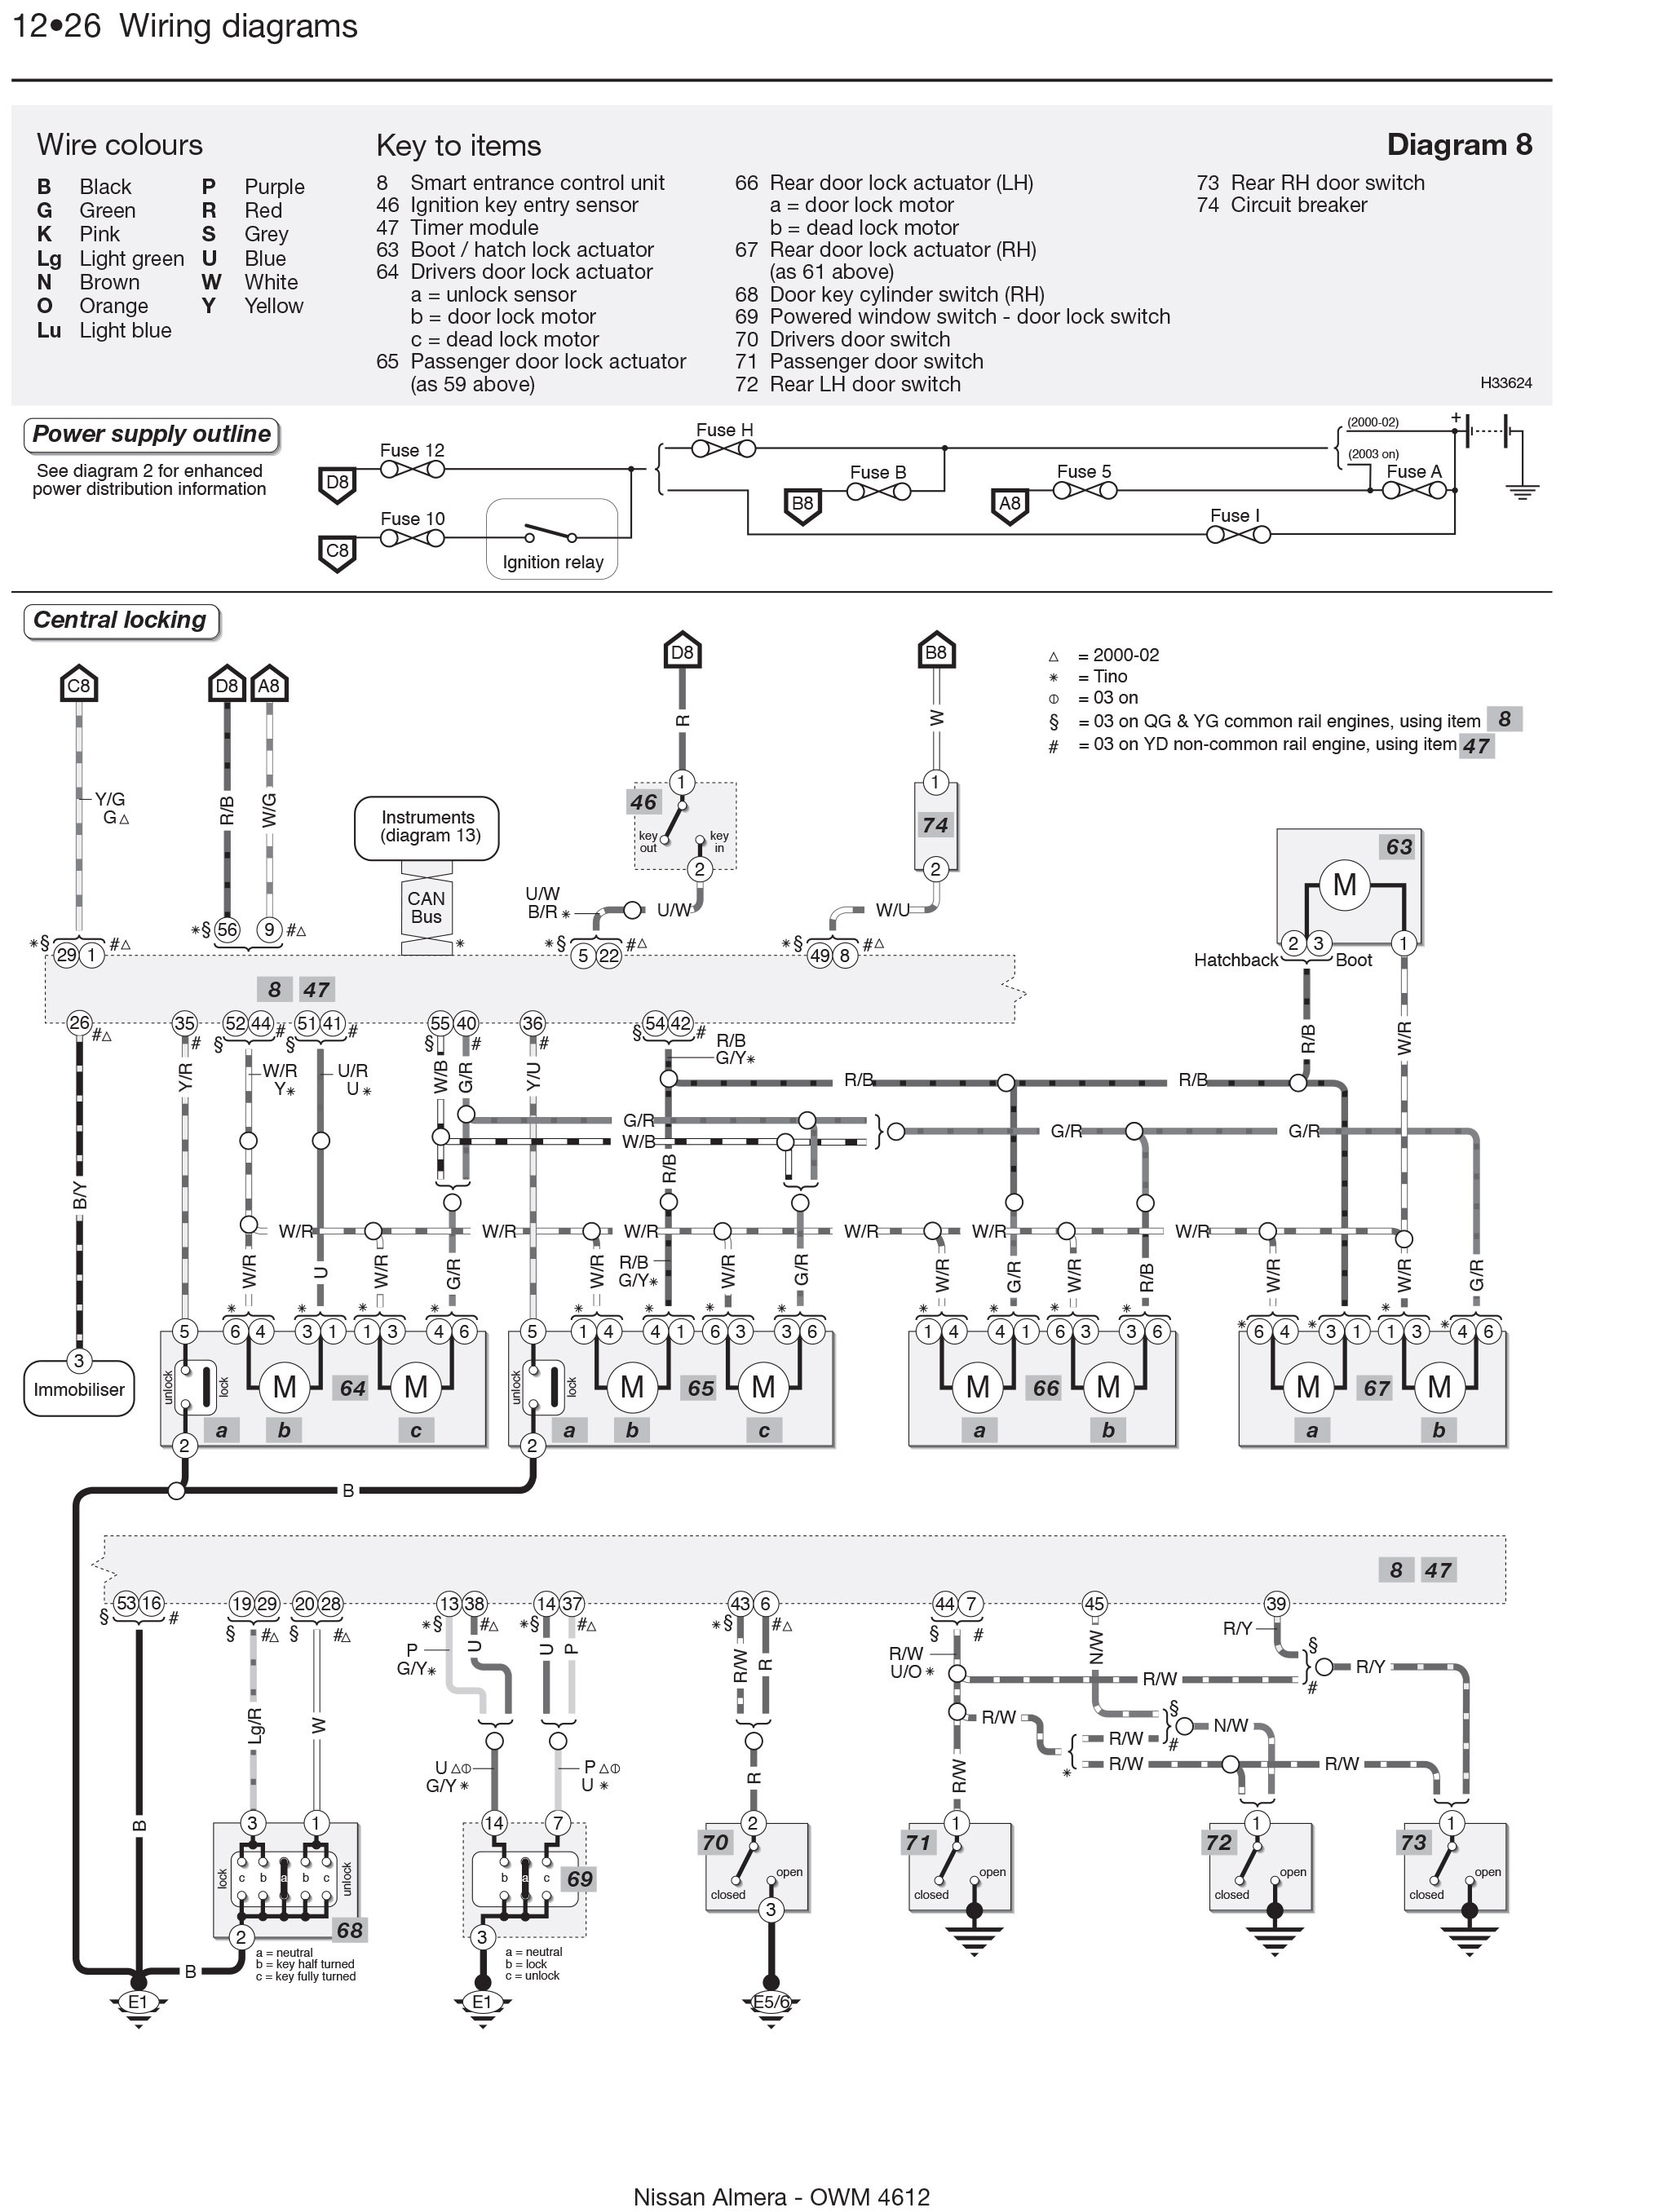 Nissan almera engine diagram my wiring diagram